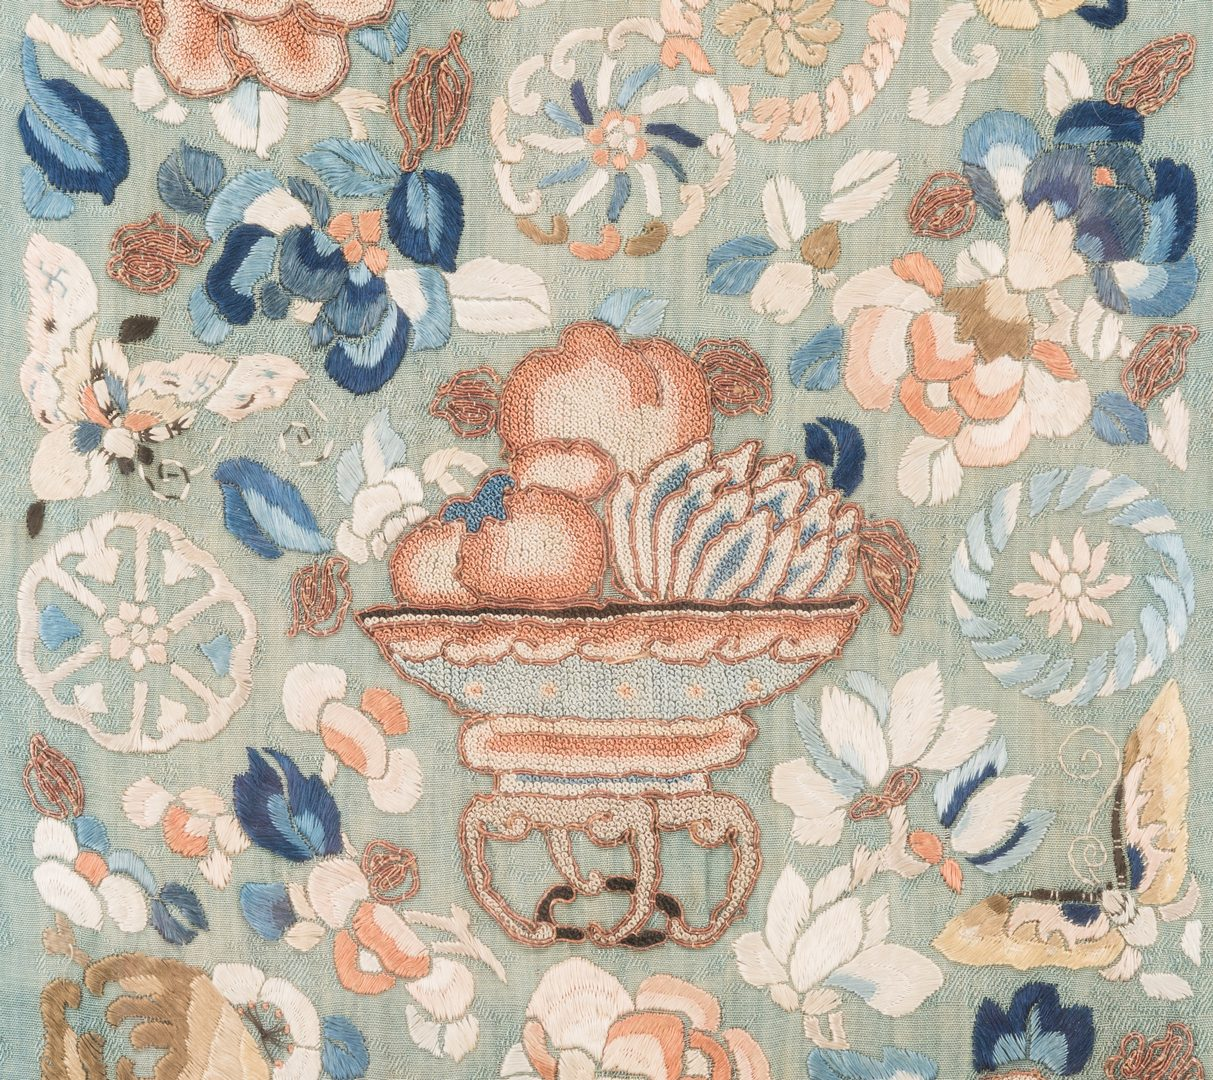 Lot 173: 2 Chinese Embroideries